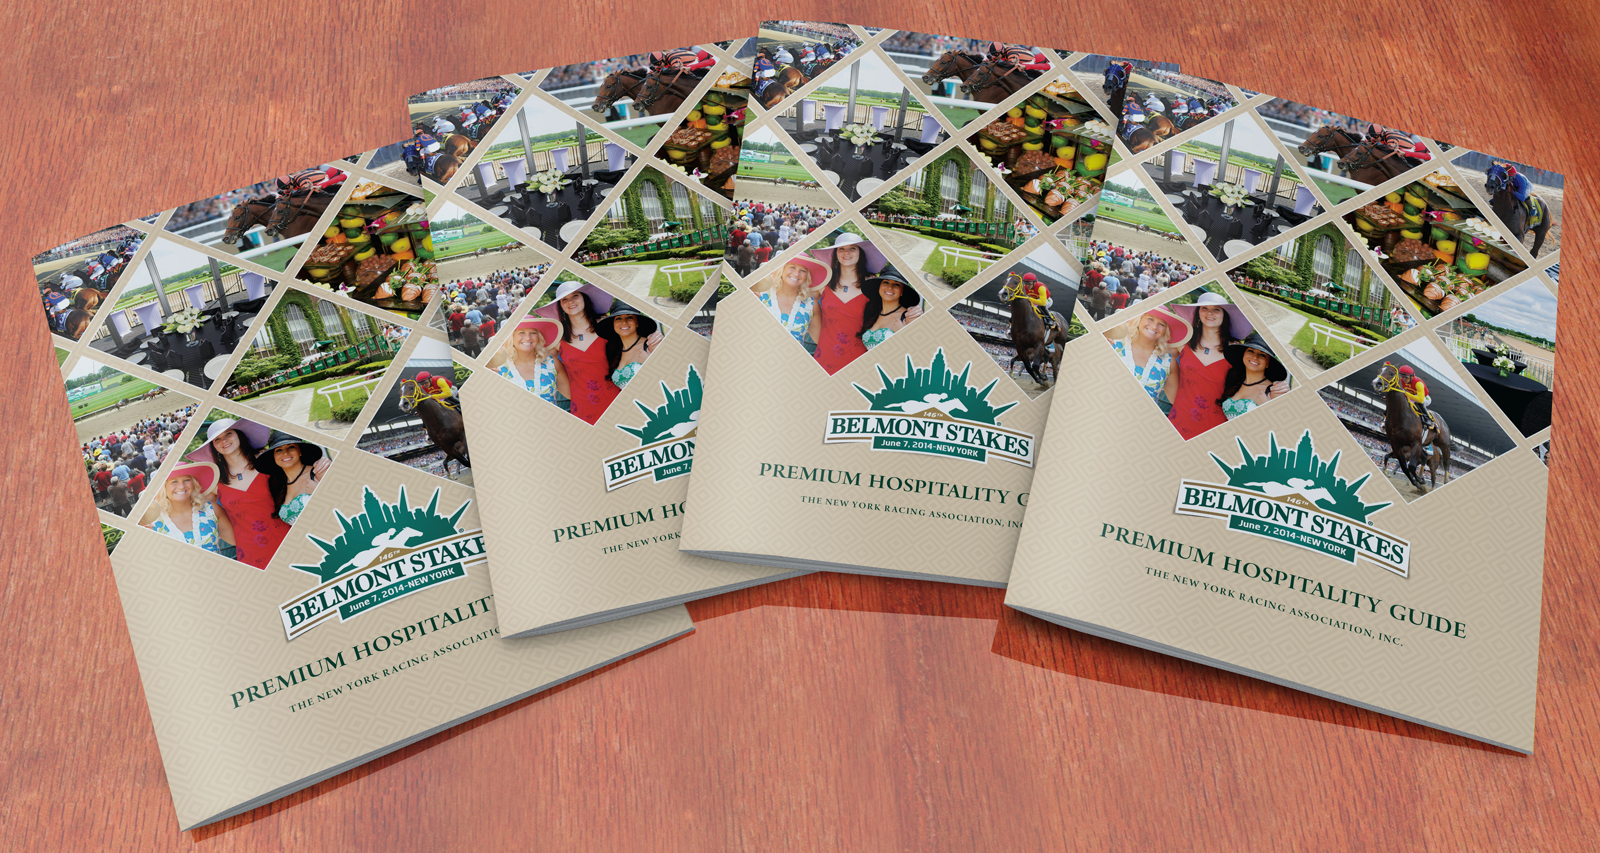 Belmont Stakes brochure